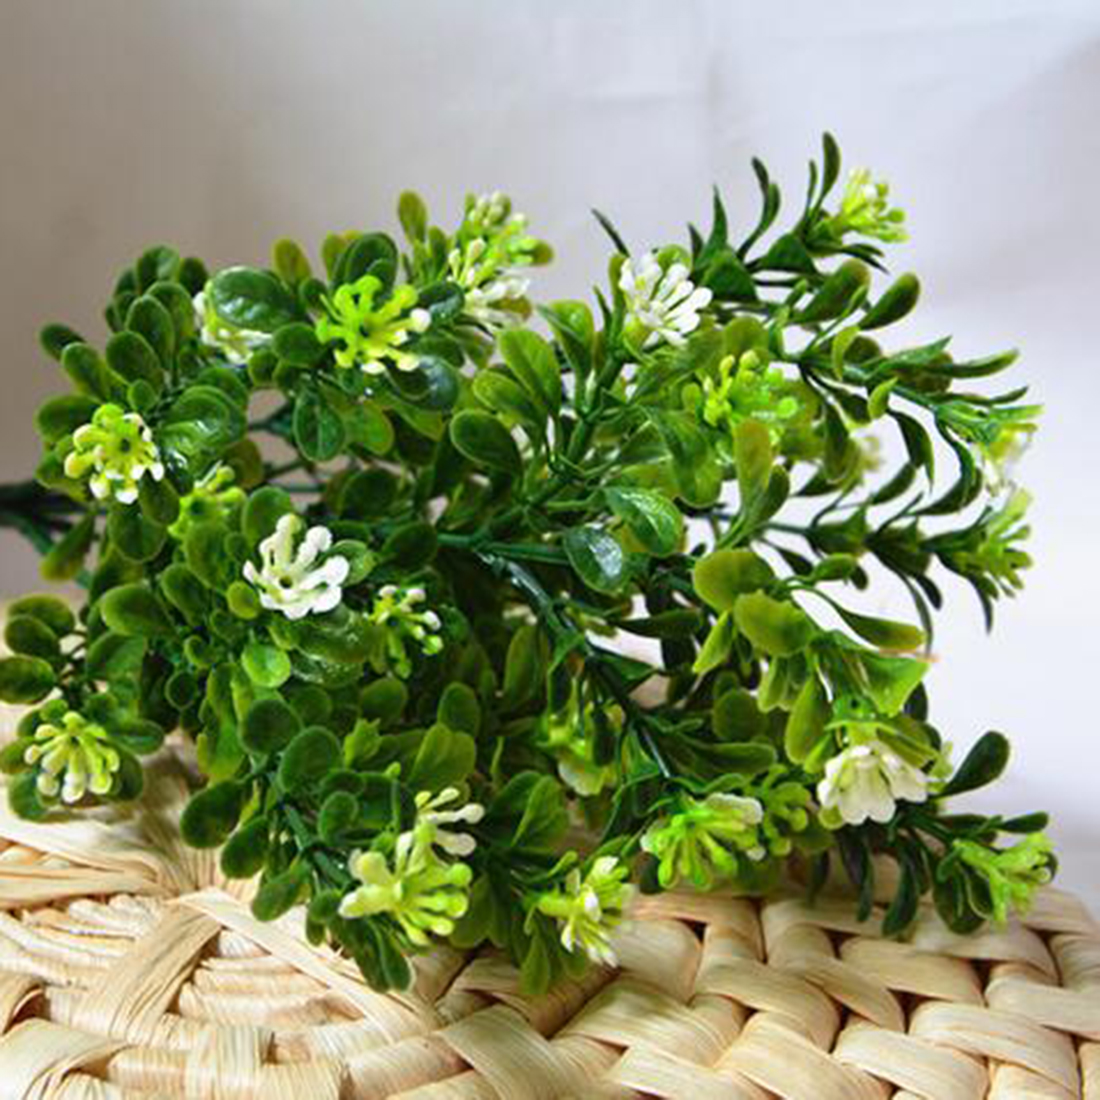 Nice 7 Branch/Bouquet 35 Heads Artificial Green Plant Fake Milan Grass Bonsai Decoration Leaf Corner Lawn Decoration